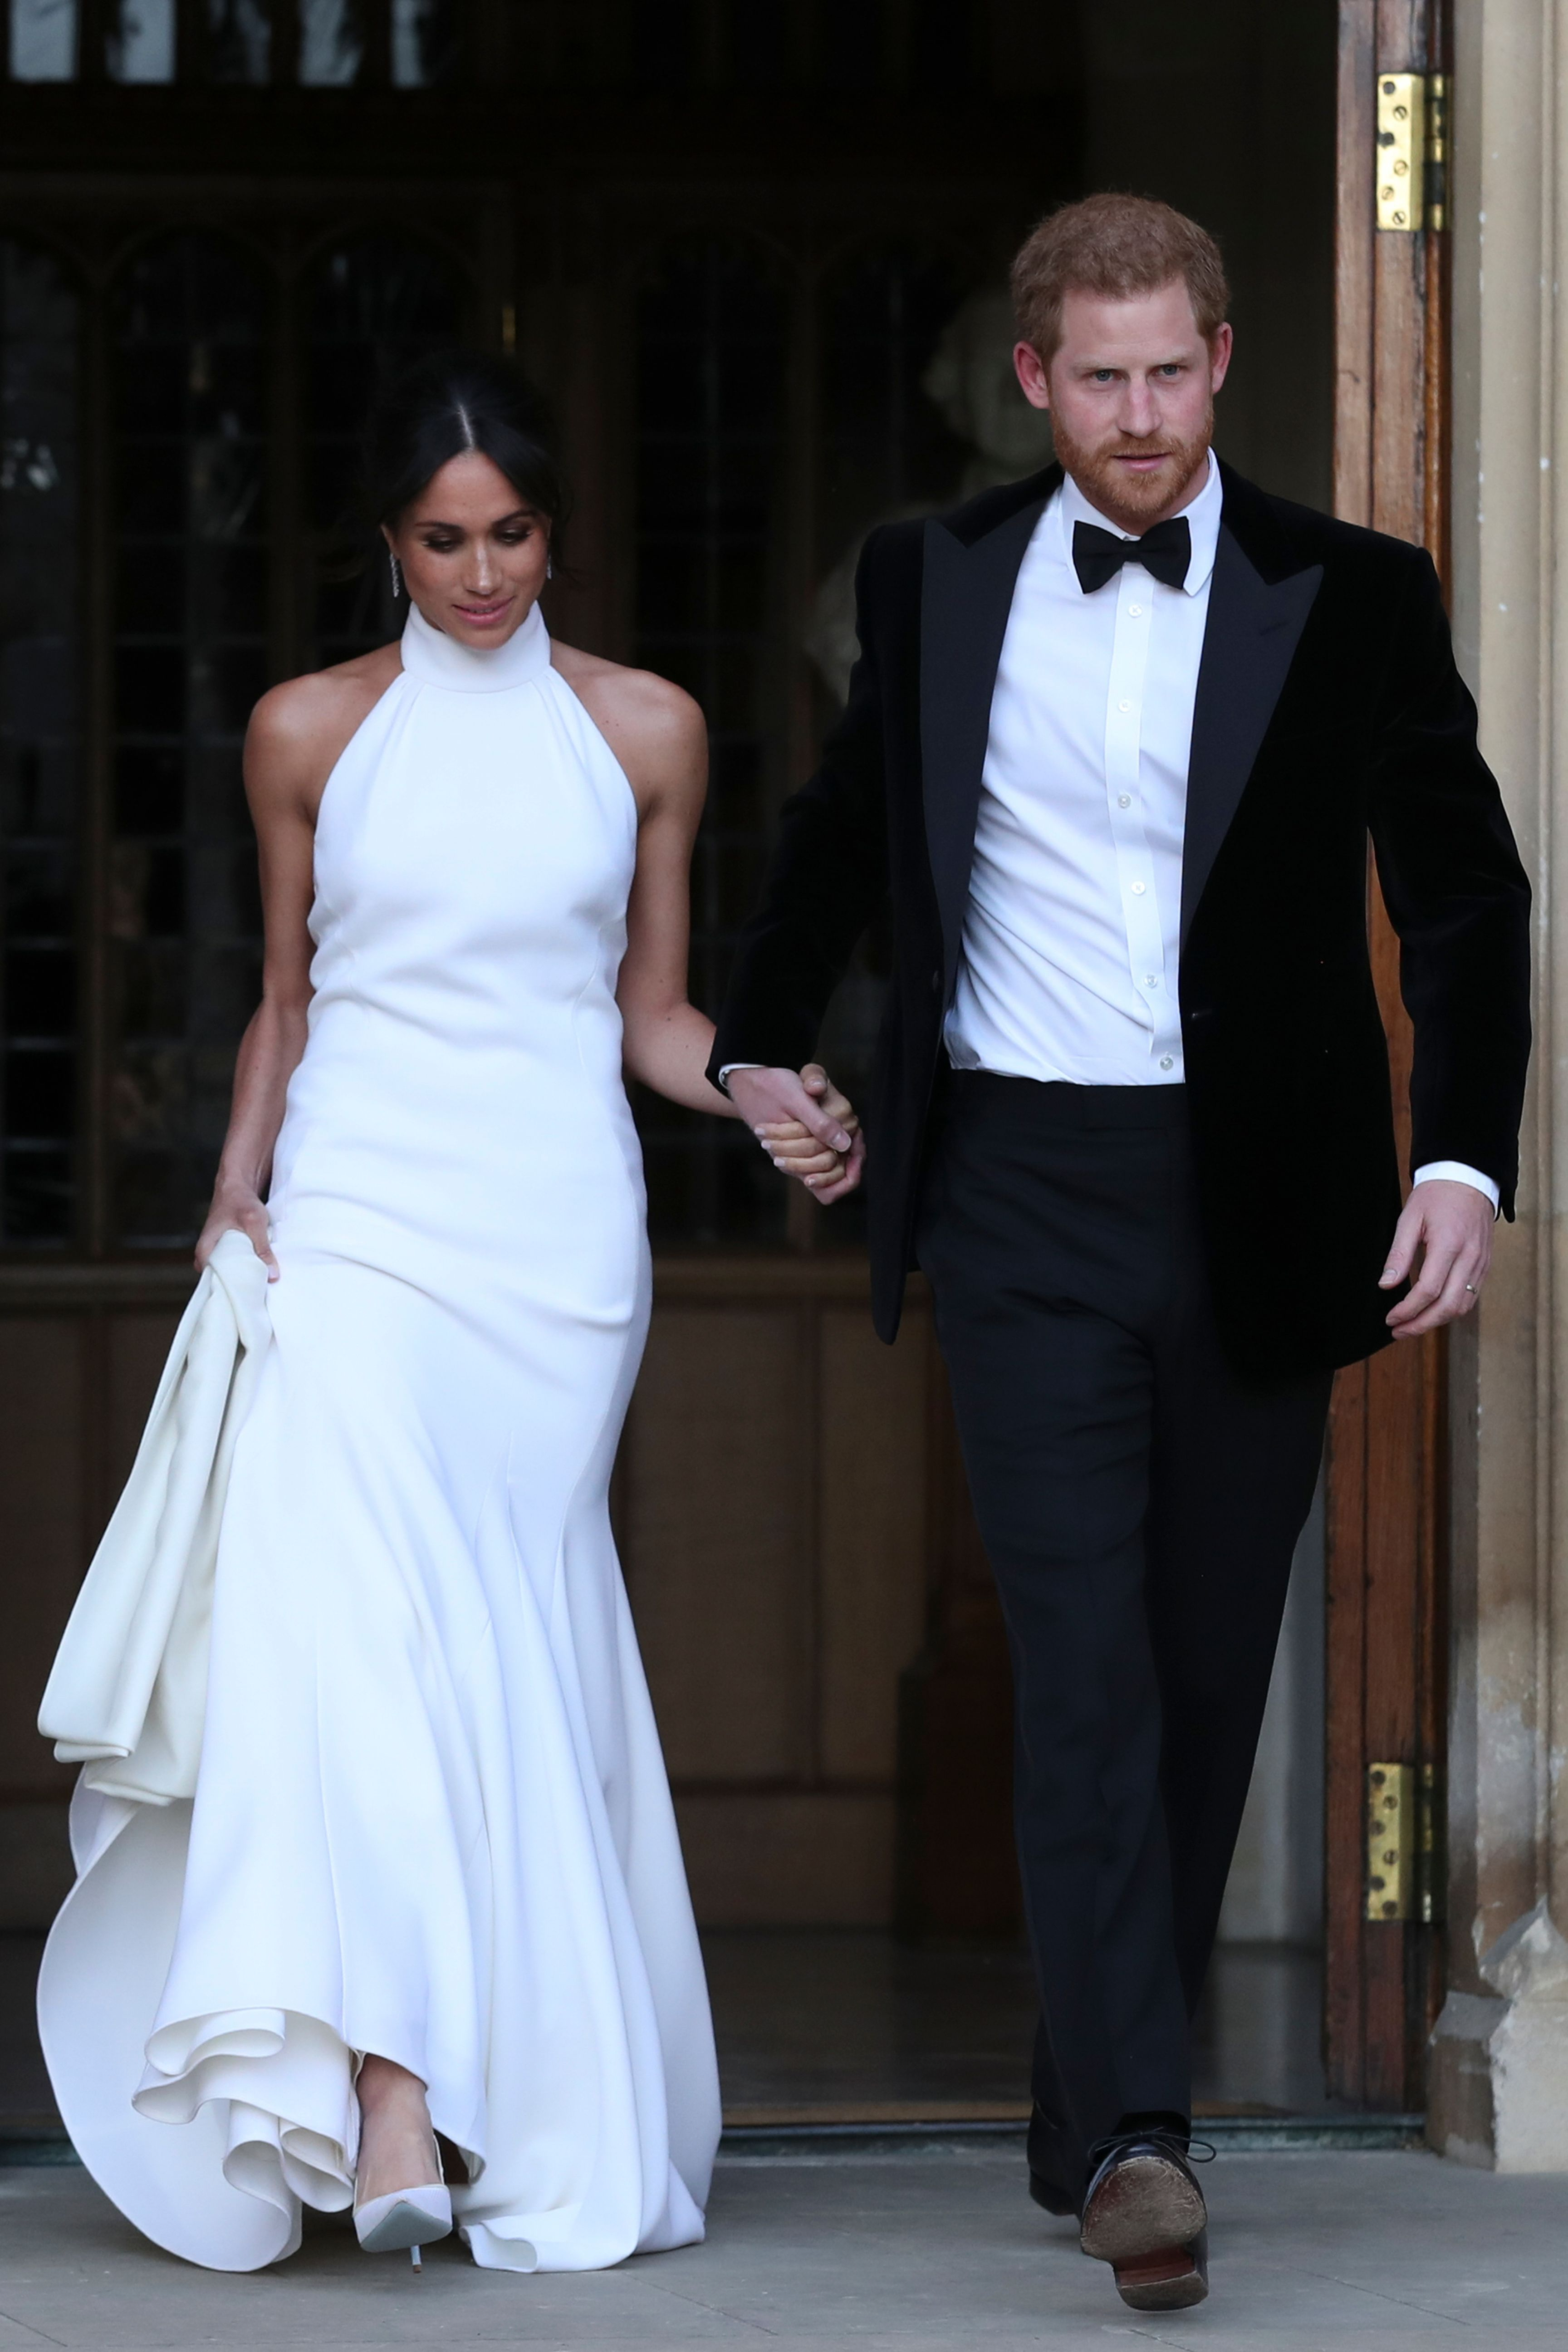 Arguably the most highly anticipated wedding of 2018 , Meghan Markle married Prince Harry on May 19 at St George's Chapel in Windsor. The bride wore two bespoke gowns, Givenchy Haute Couture designed by Clare Waight Keller for the ceremony, and custom Stella McCartney (pictured here) for the subsequent party.